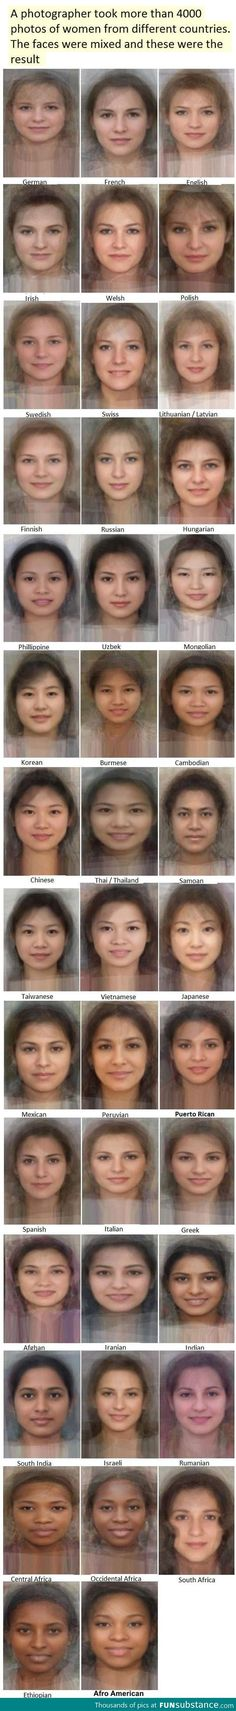 The average woman from each country...